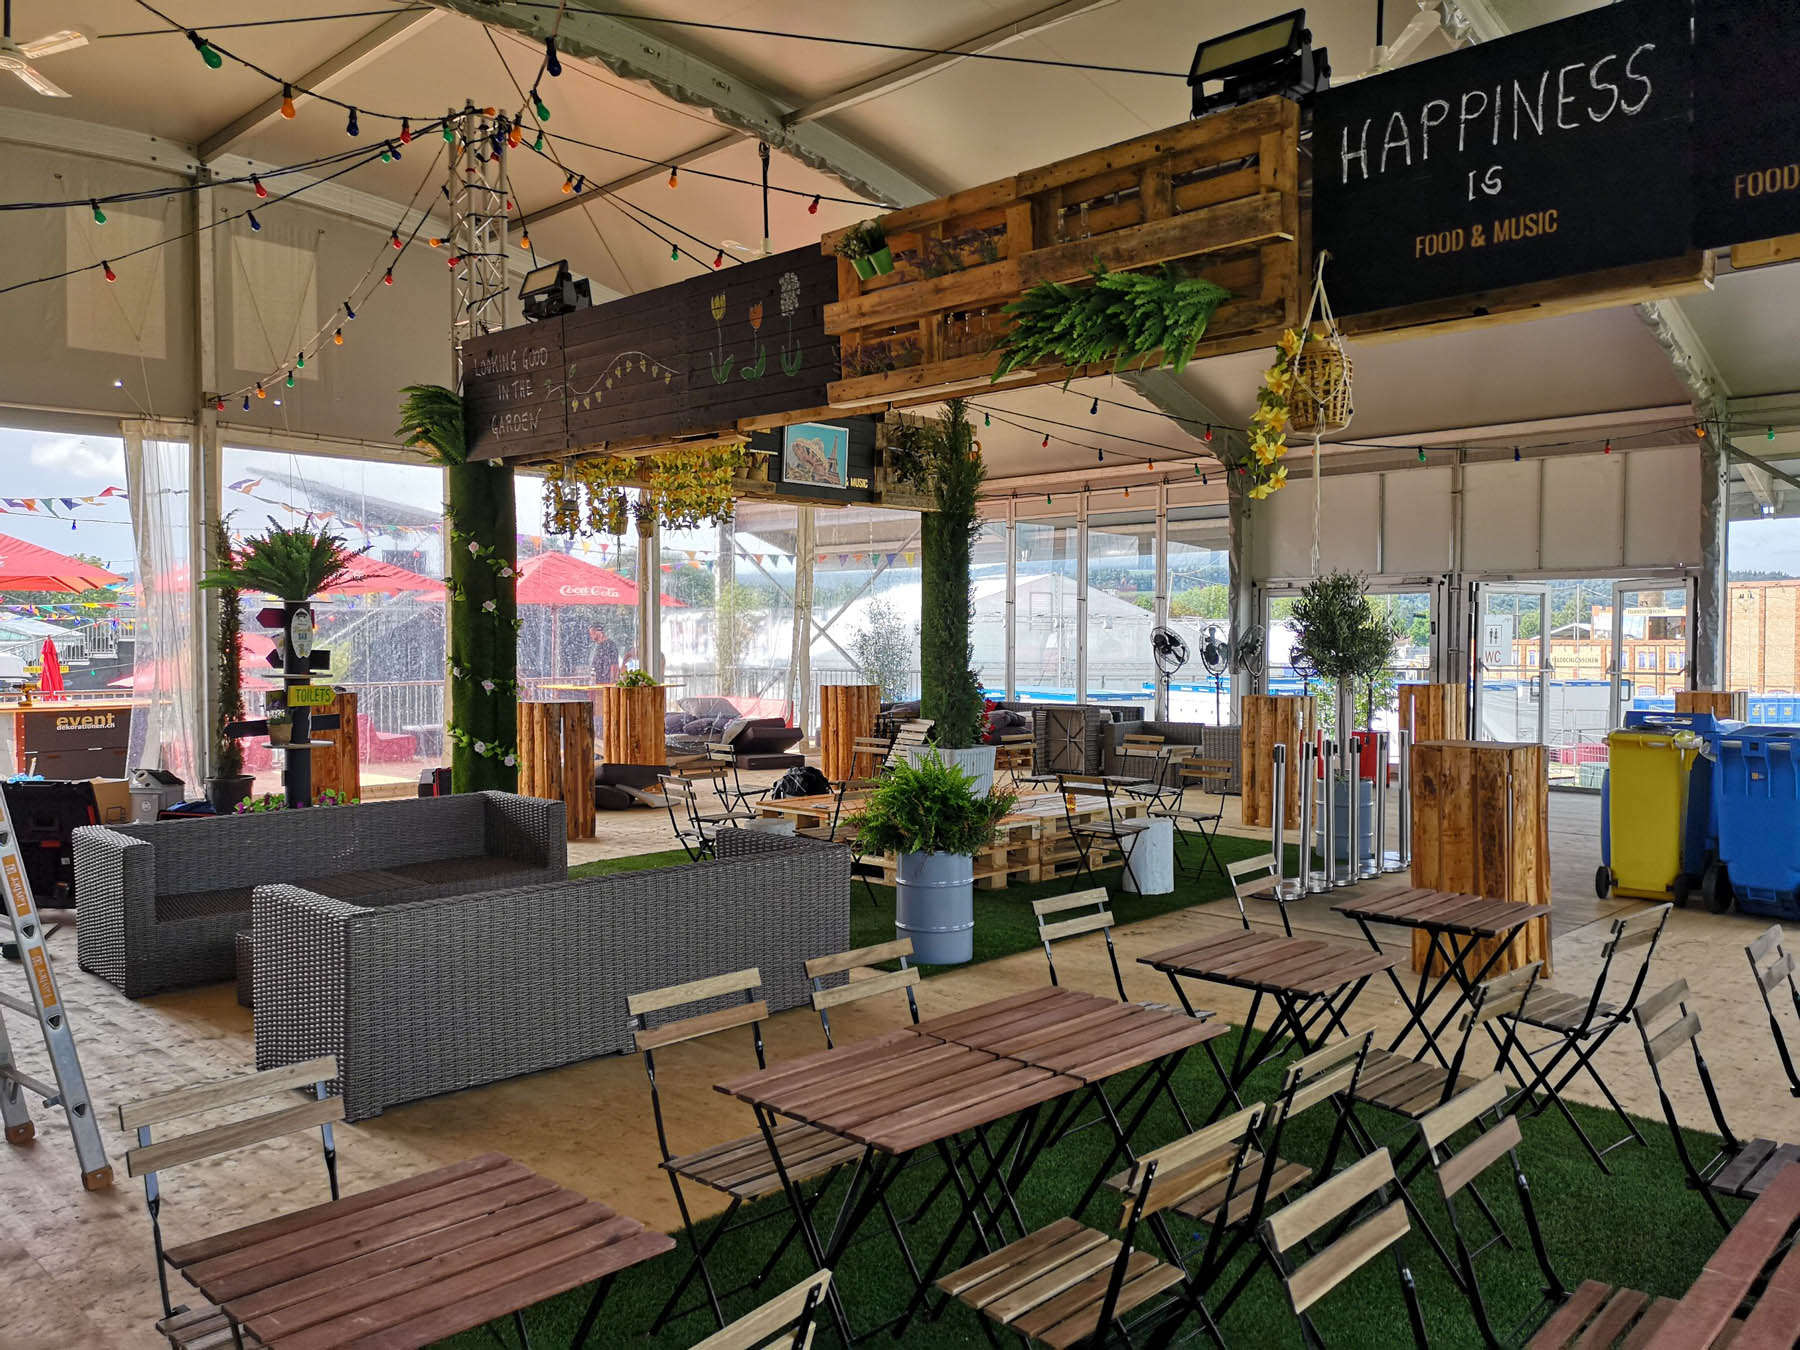 Streetfood mieten rent-a-lounge